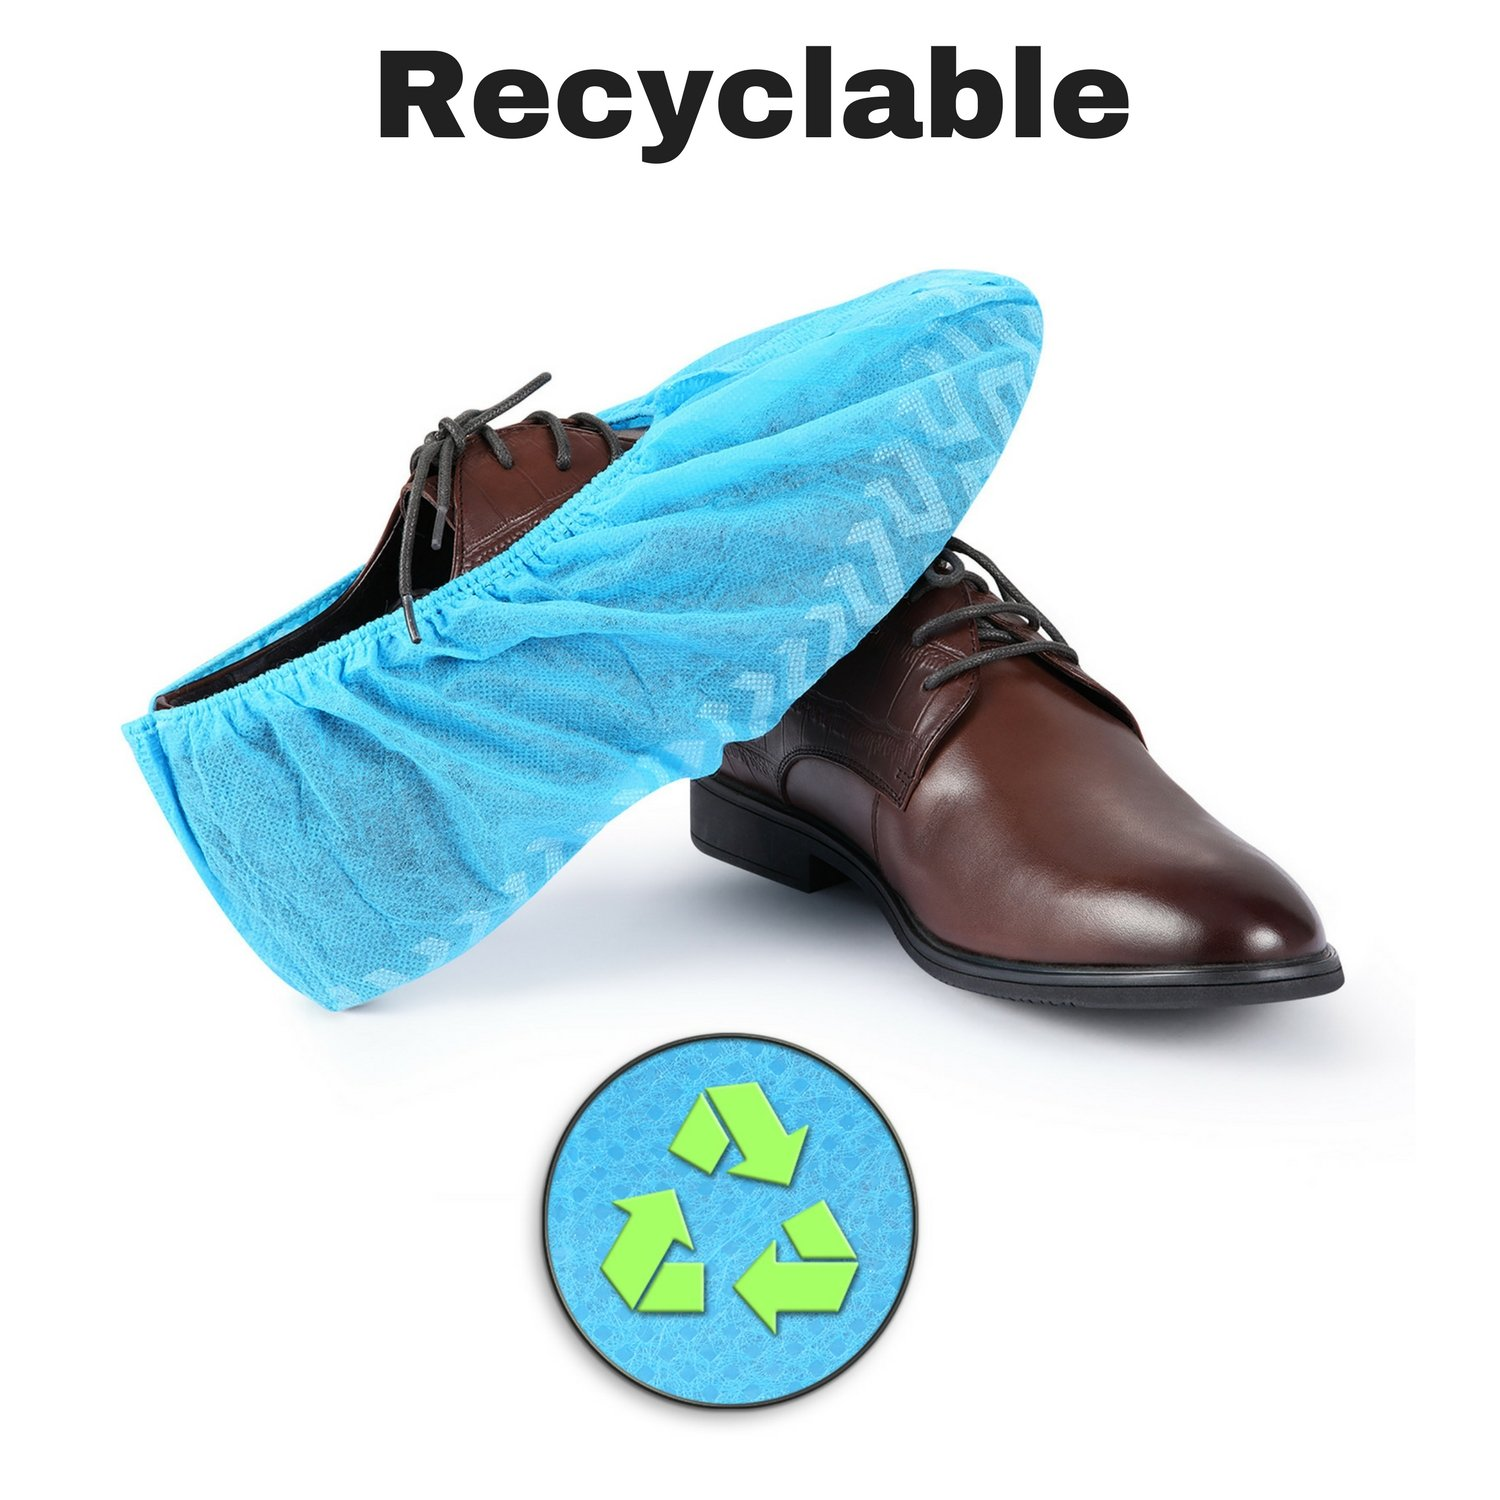 MIFFLIN Disposable Shoe Covers (Blue, 120 Pieces) Durable Boot Covers, Non-Slip Polypropylene, One Size Fits Most by MIFFLIN (Image #8)